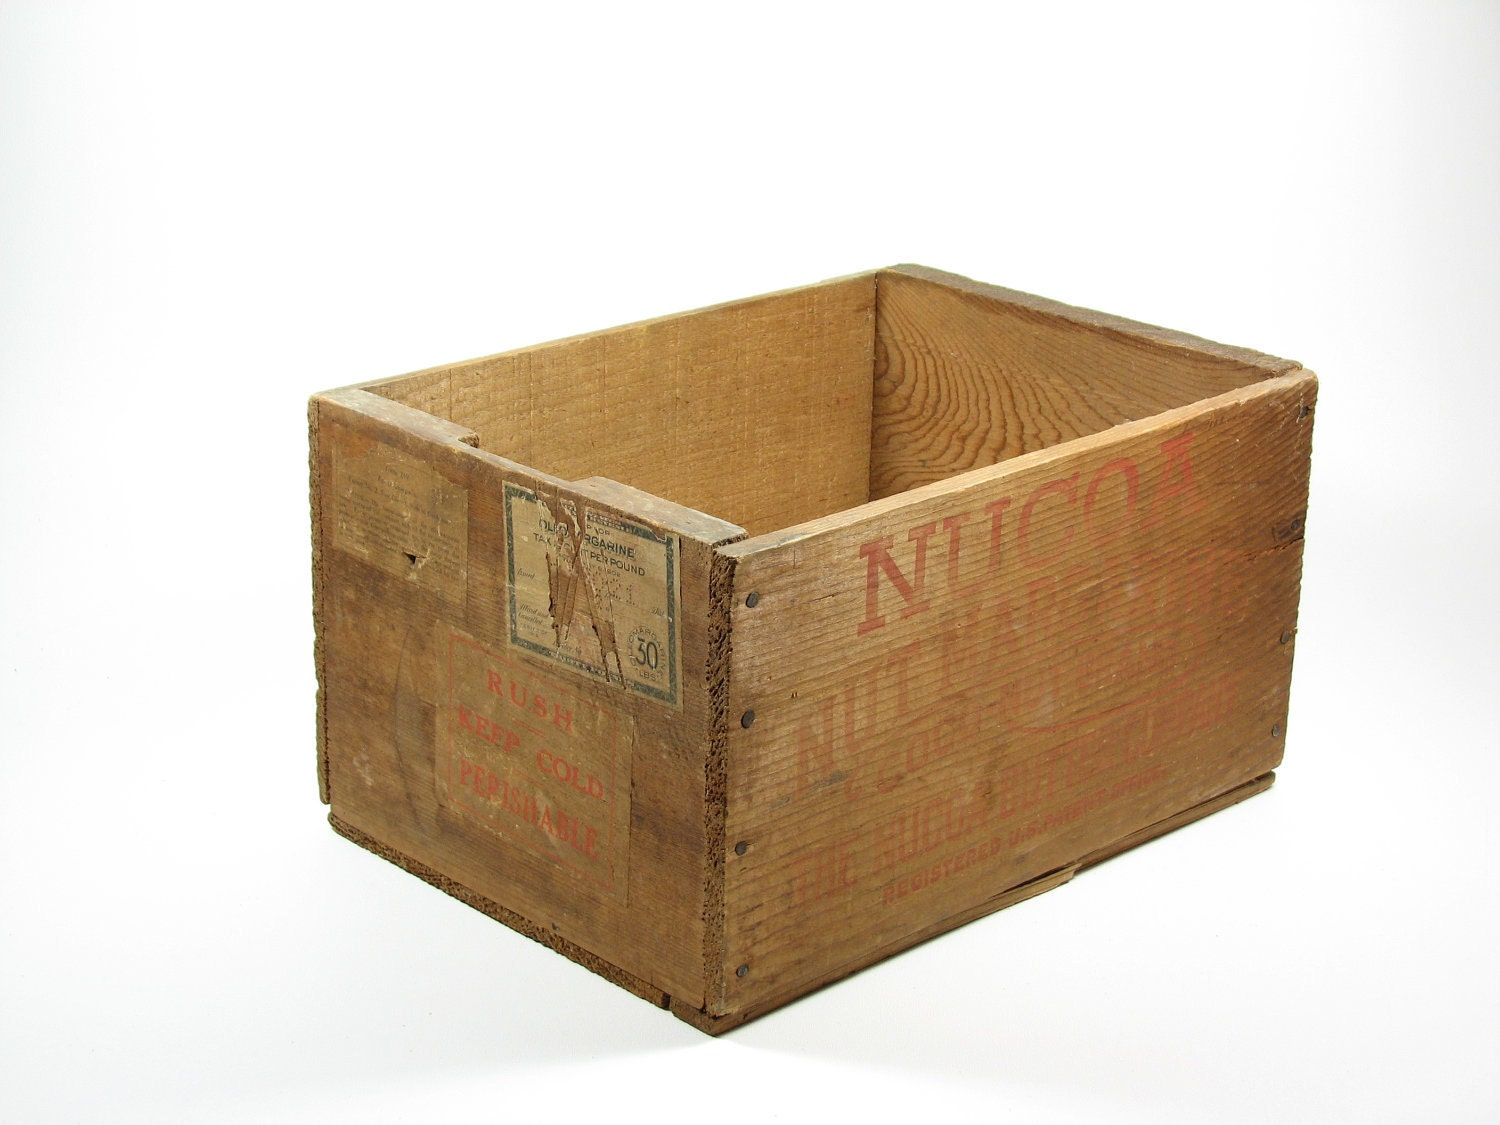 Vintage wood crate advertising box wooden nucoa butter co for Where to find old wooden crates